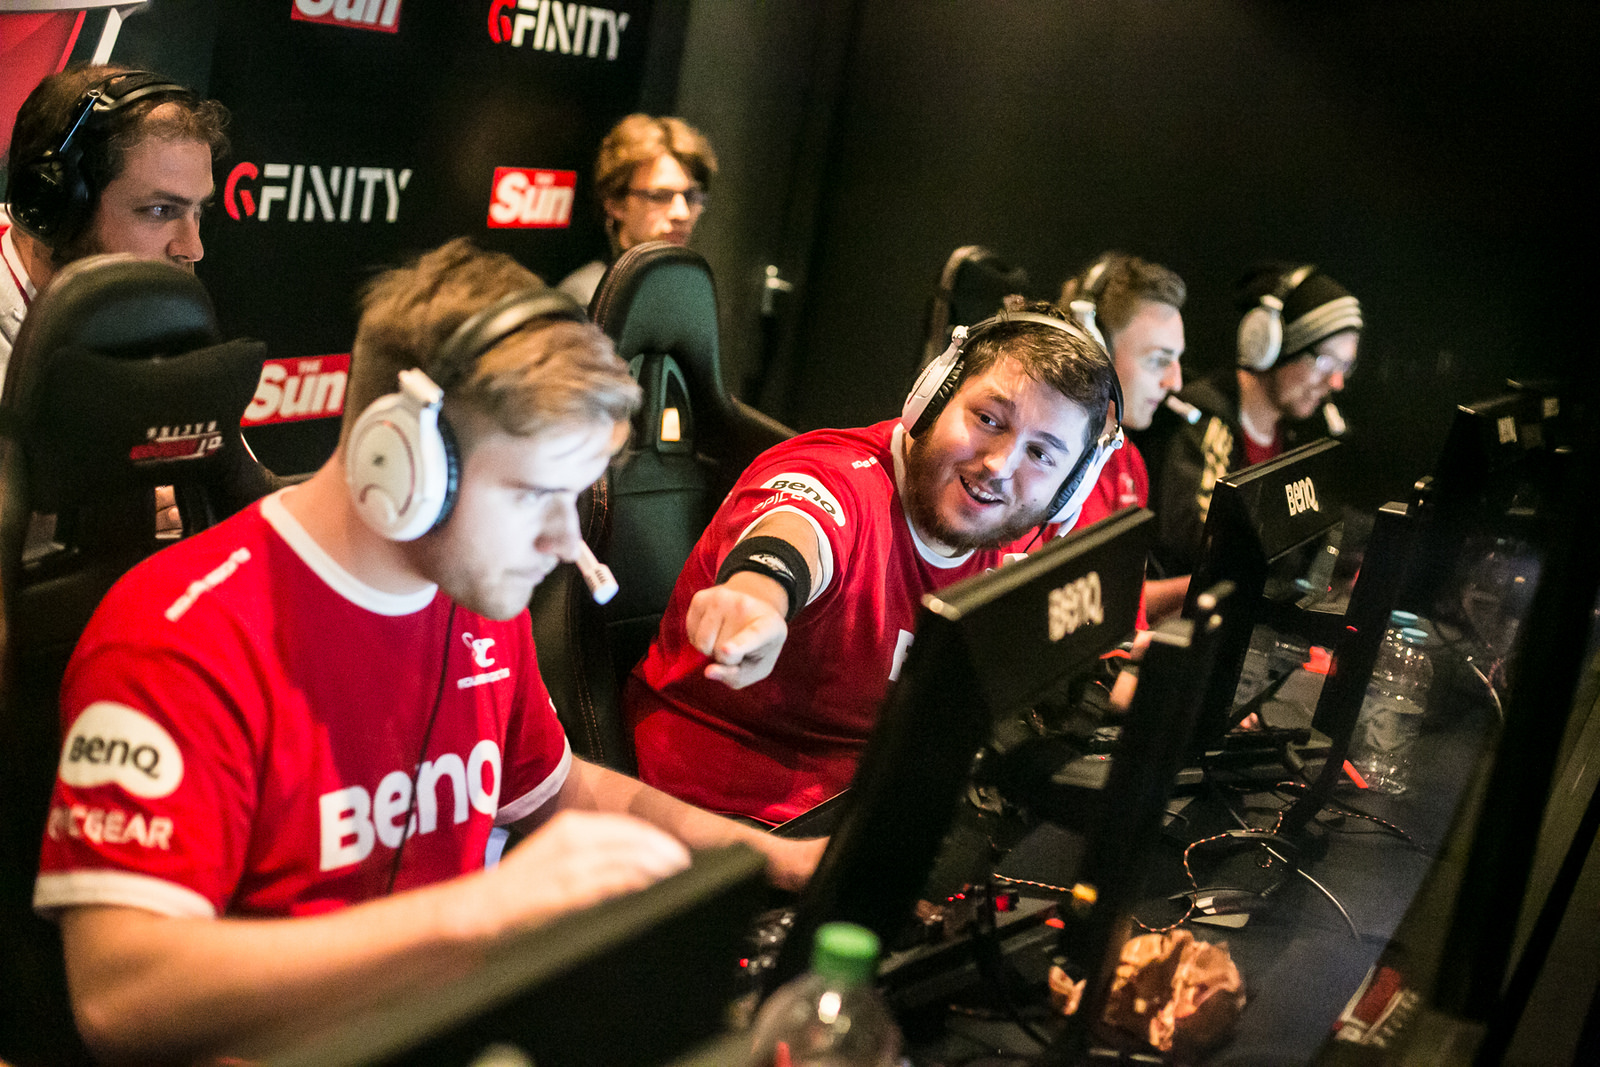 Gfinity Arena Players